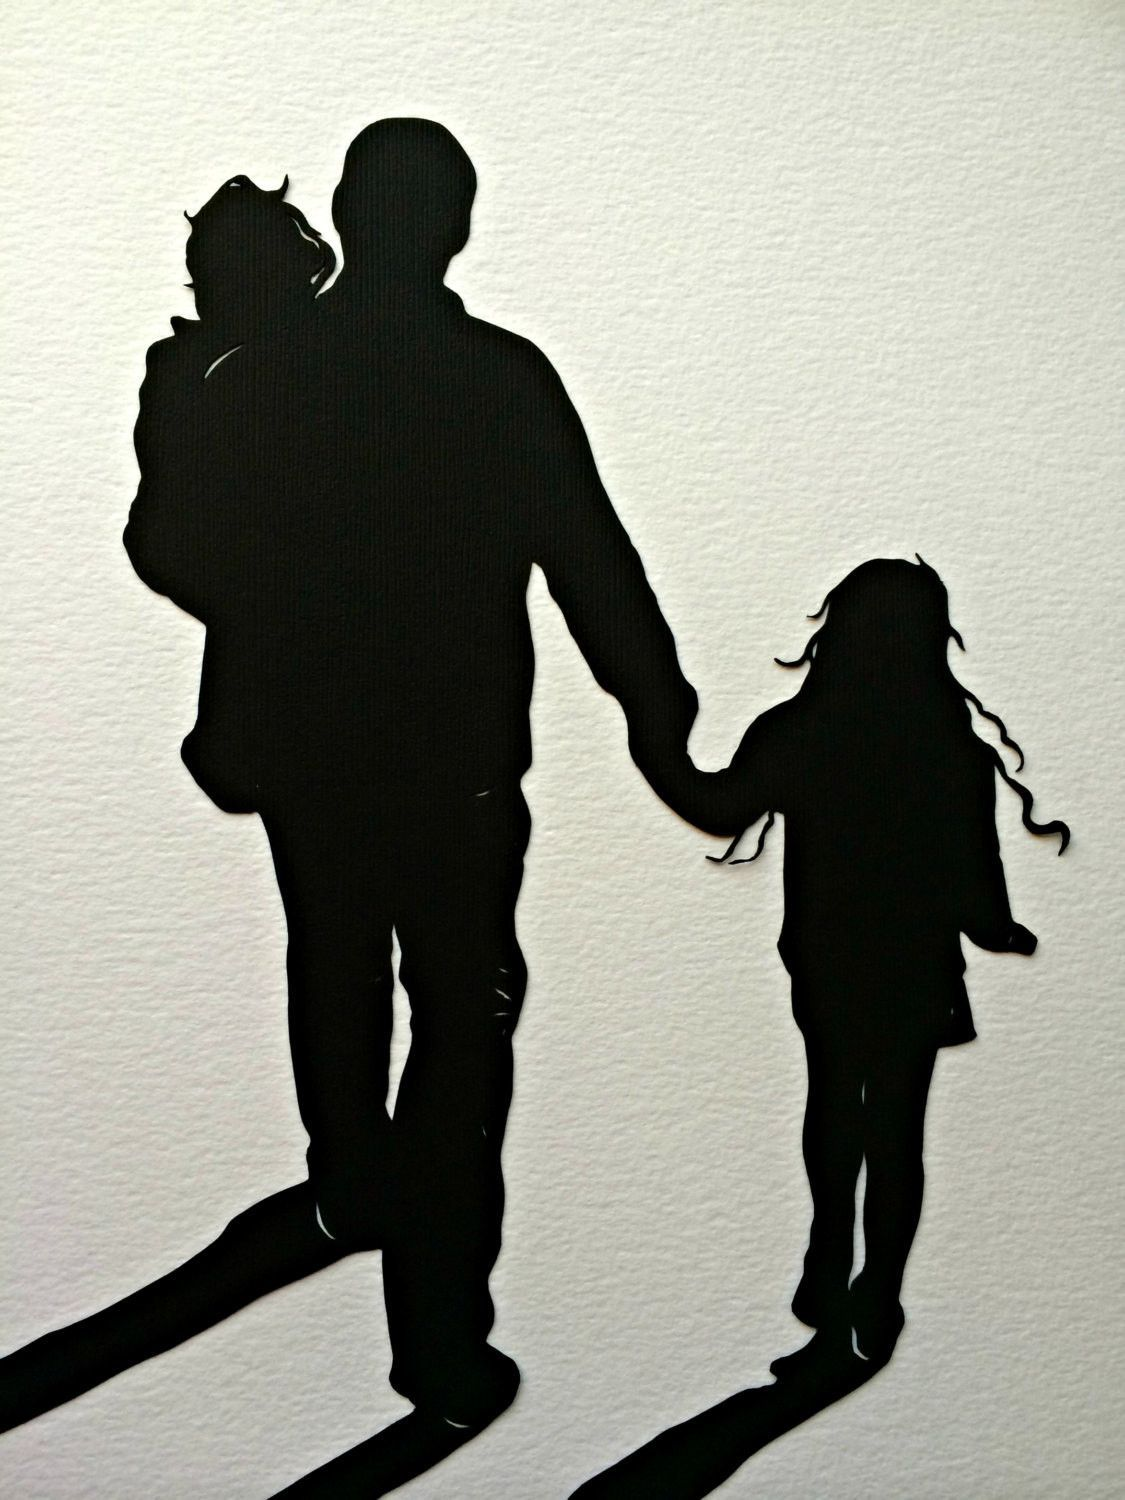 This Listing Is For A Kids Portrait Black Silhouette With White Accents Cut From Single Sheet Of Pa